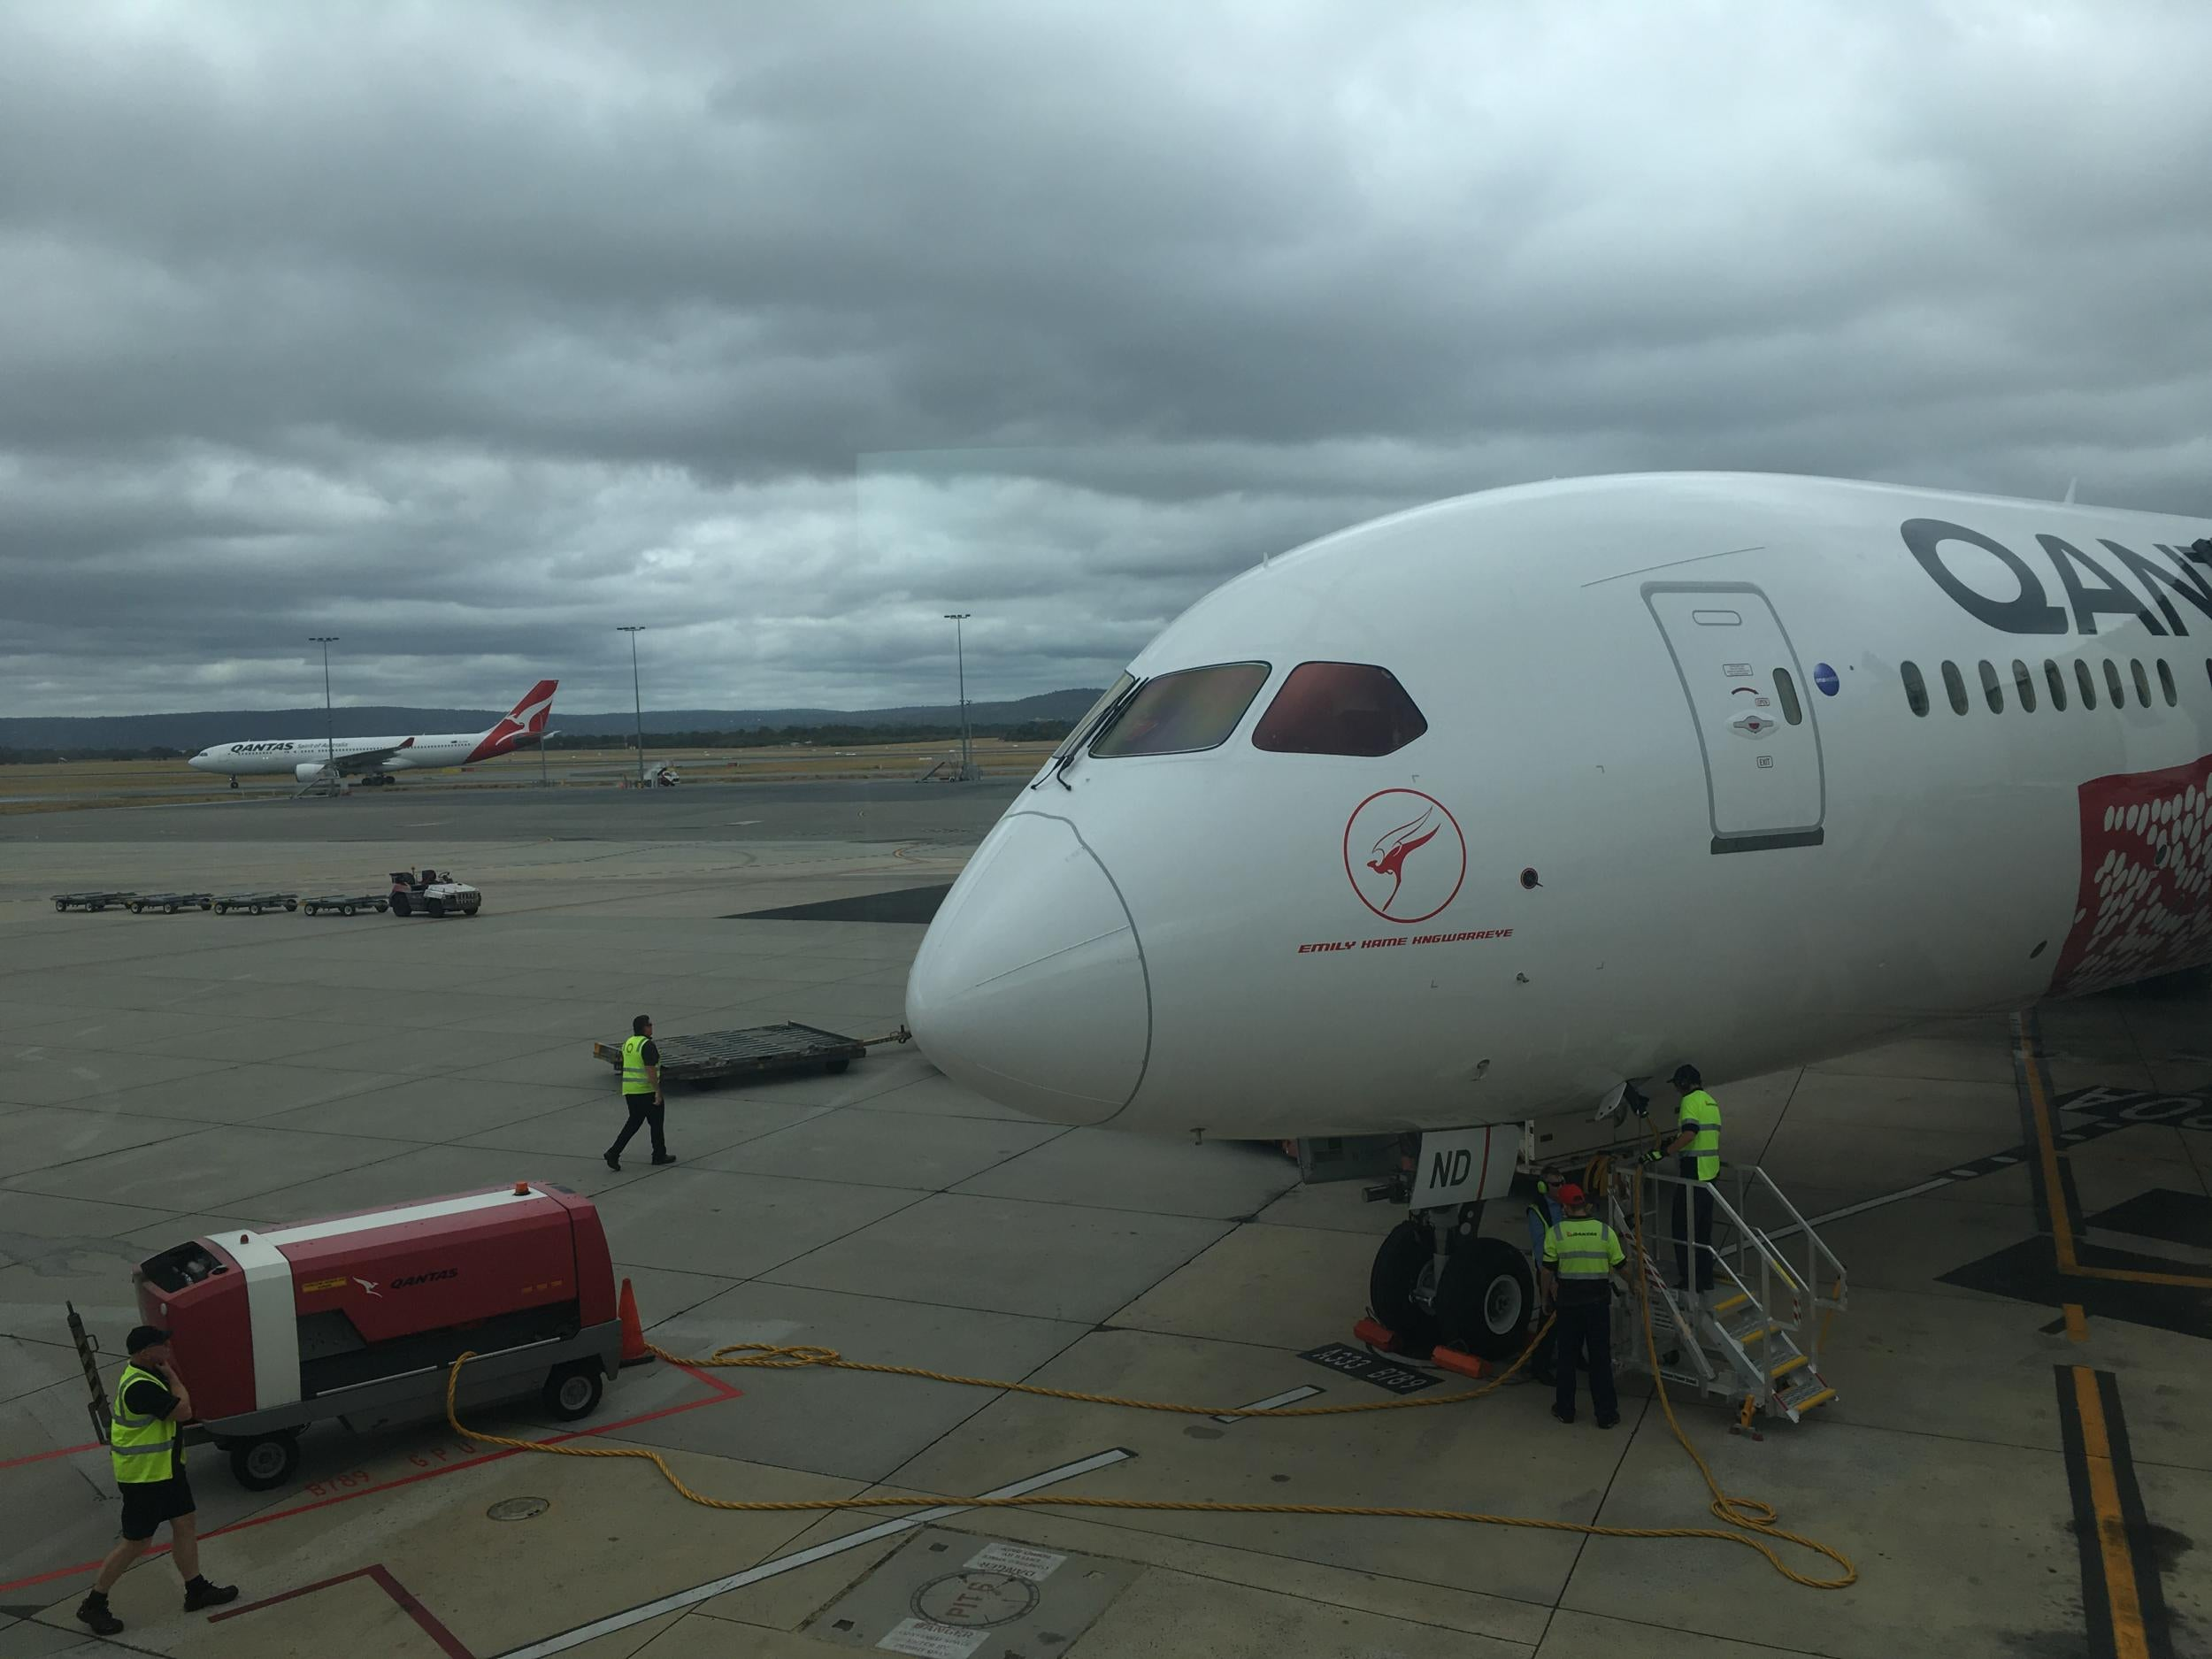 First nonstop flight from Australia to UK lands after 17